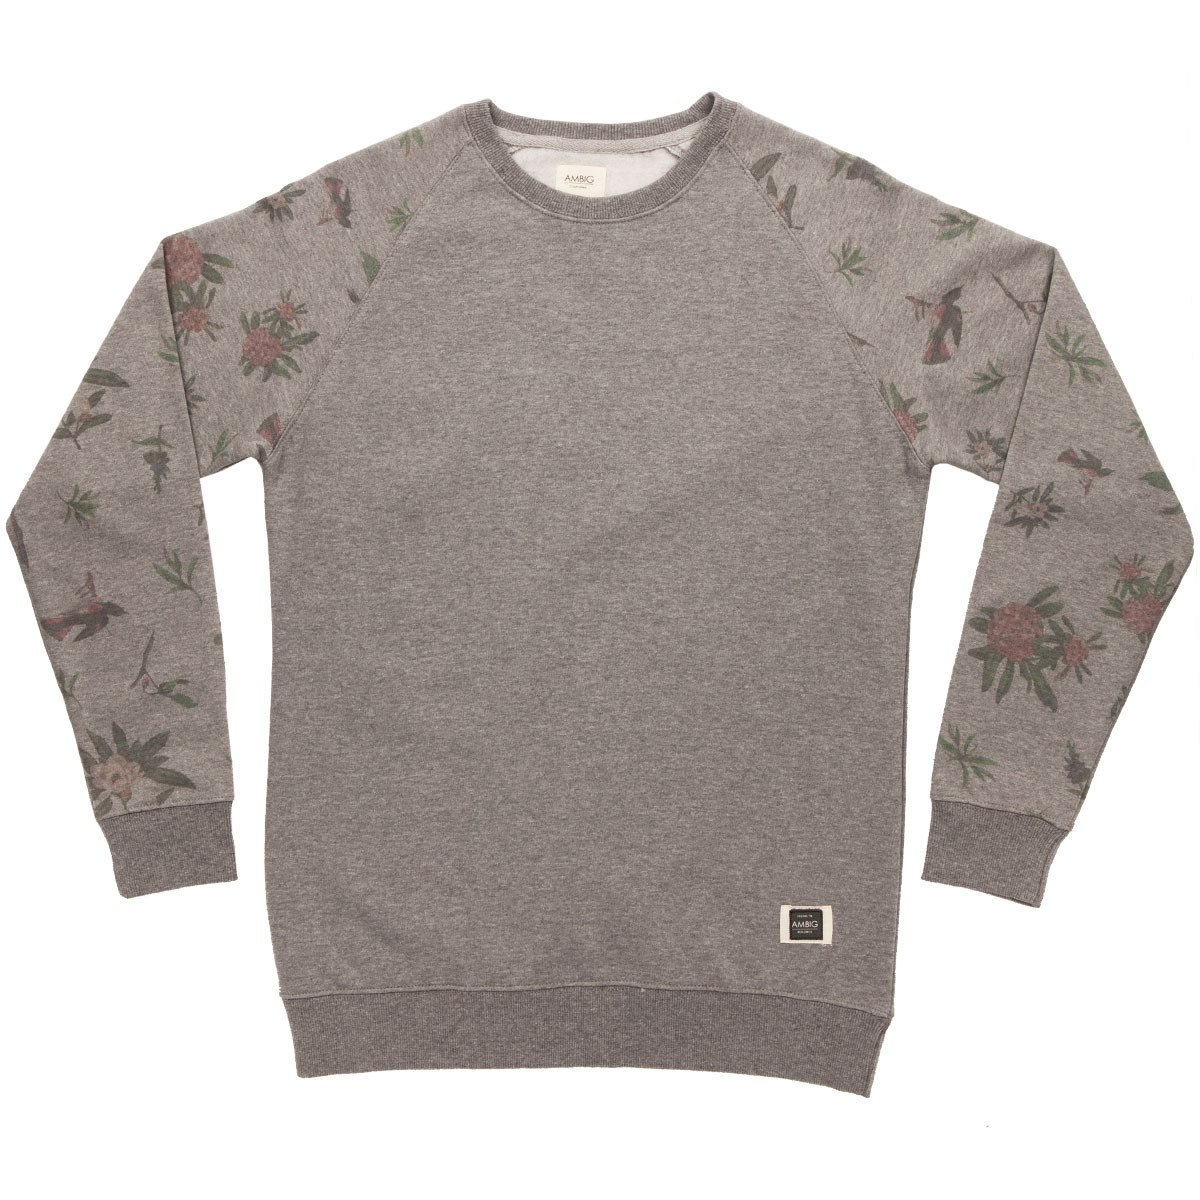 Ambig National Crew Sweatshirt - Grey Heather